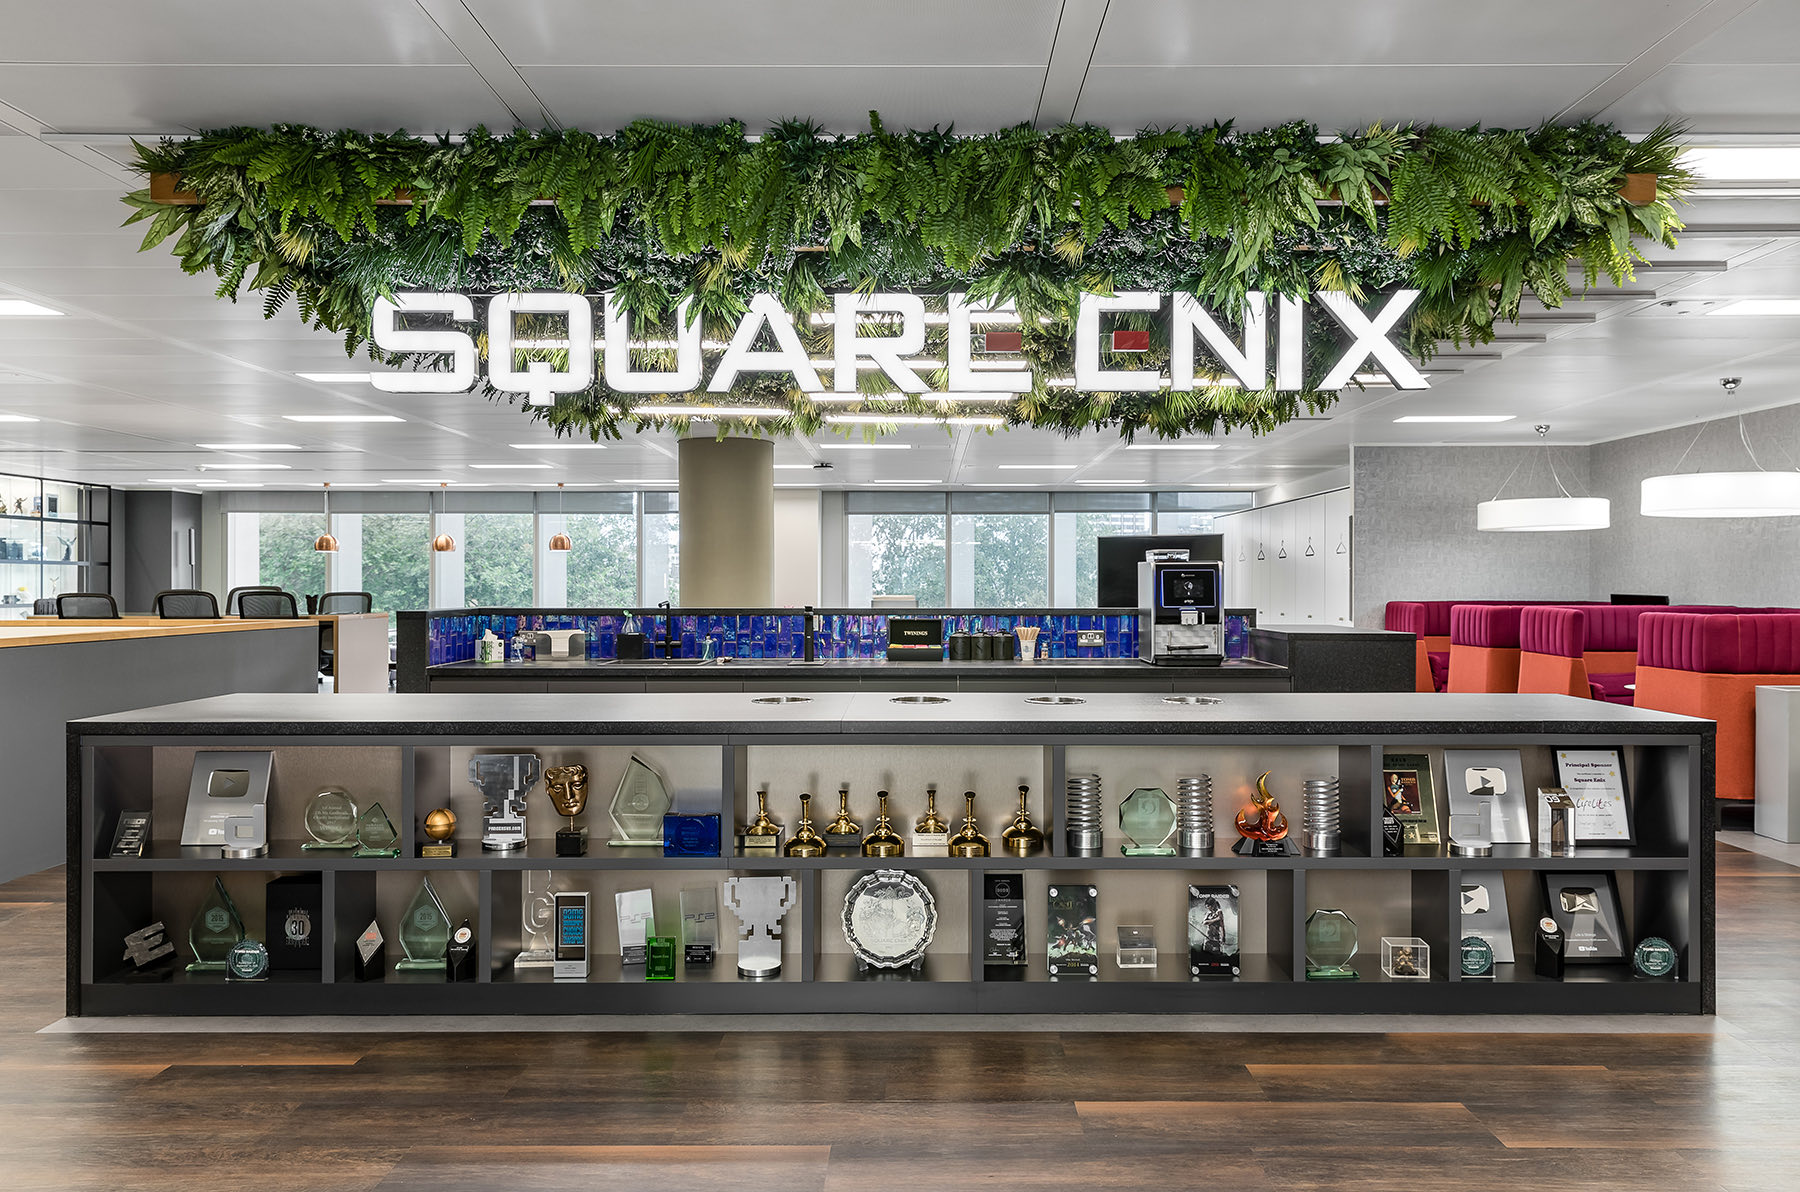 A Look Inside Square Enix's Modern London Office